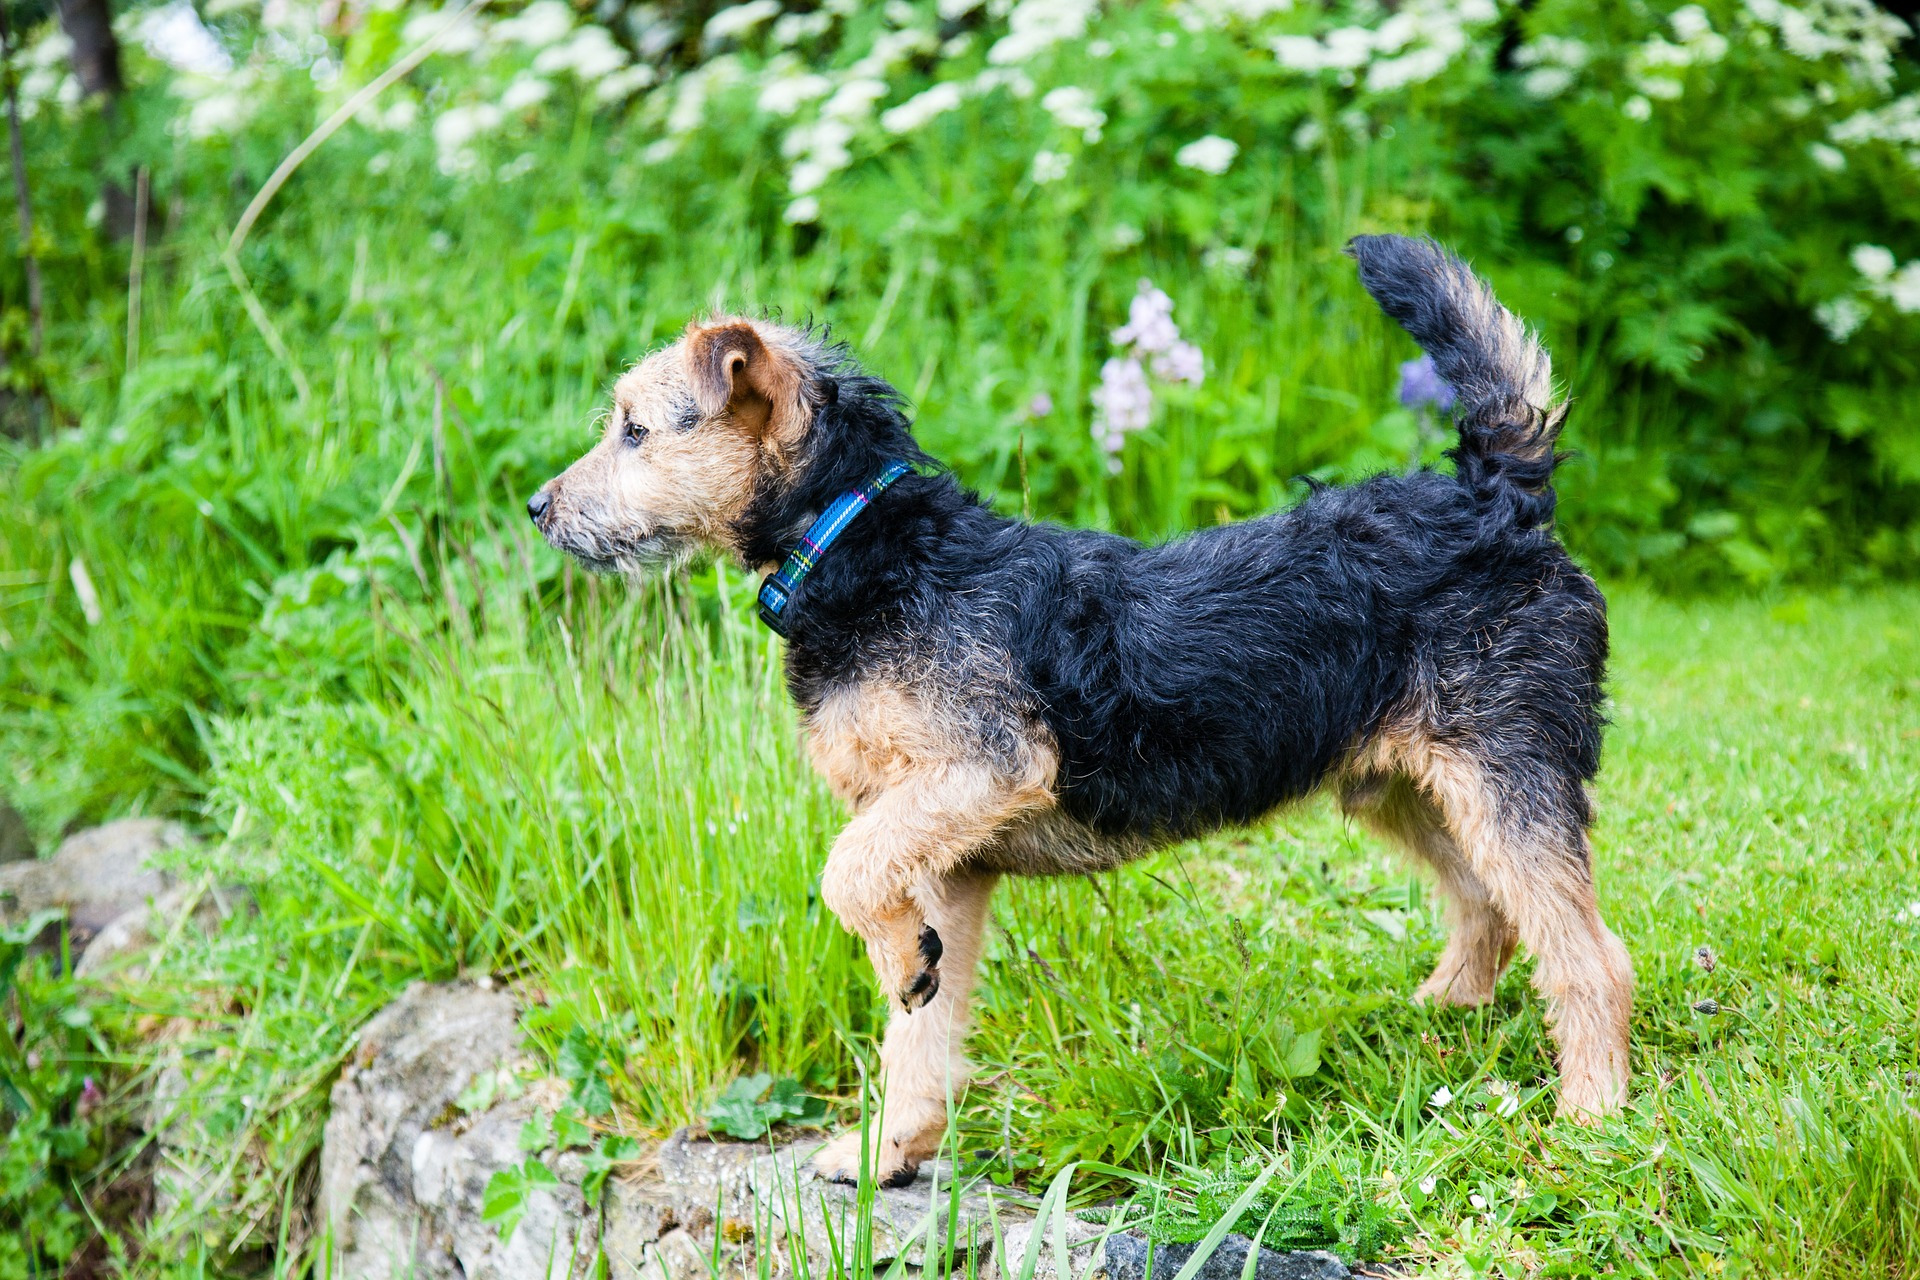 A black and tan Lakeland Terrier Dog standing in grass.